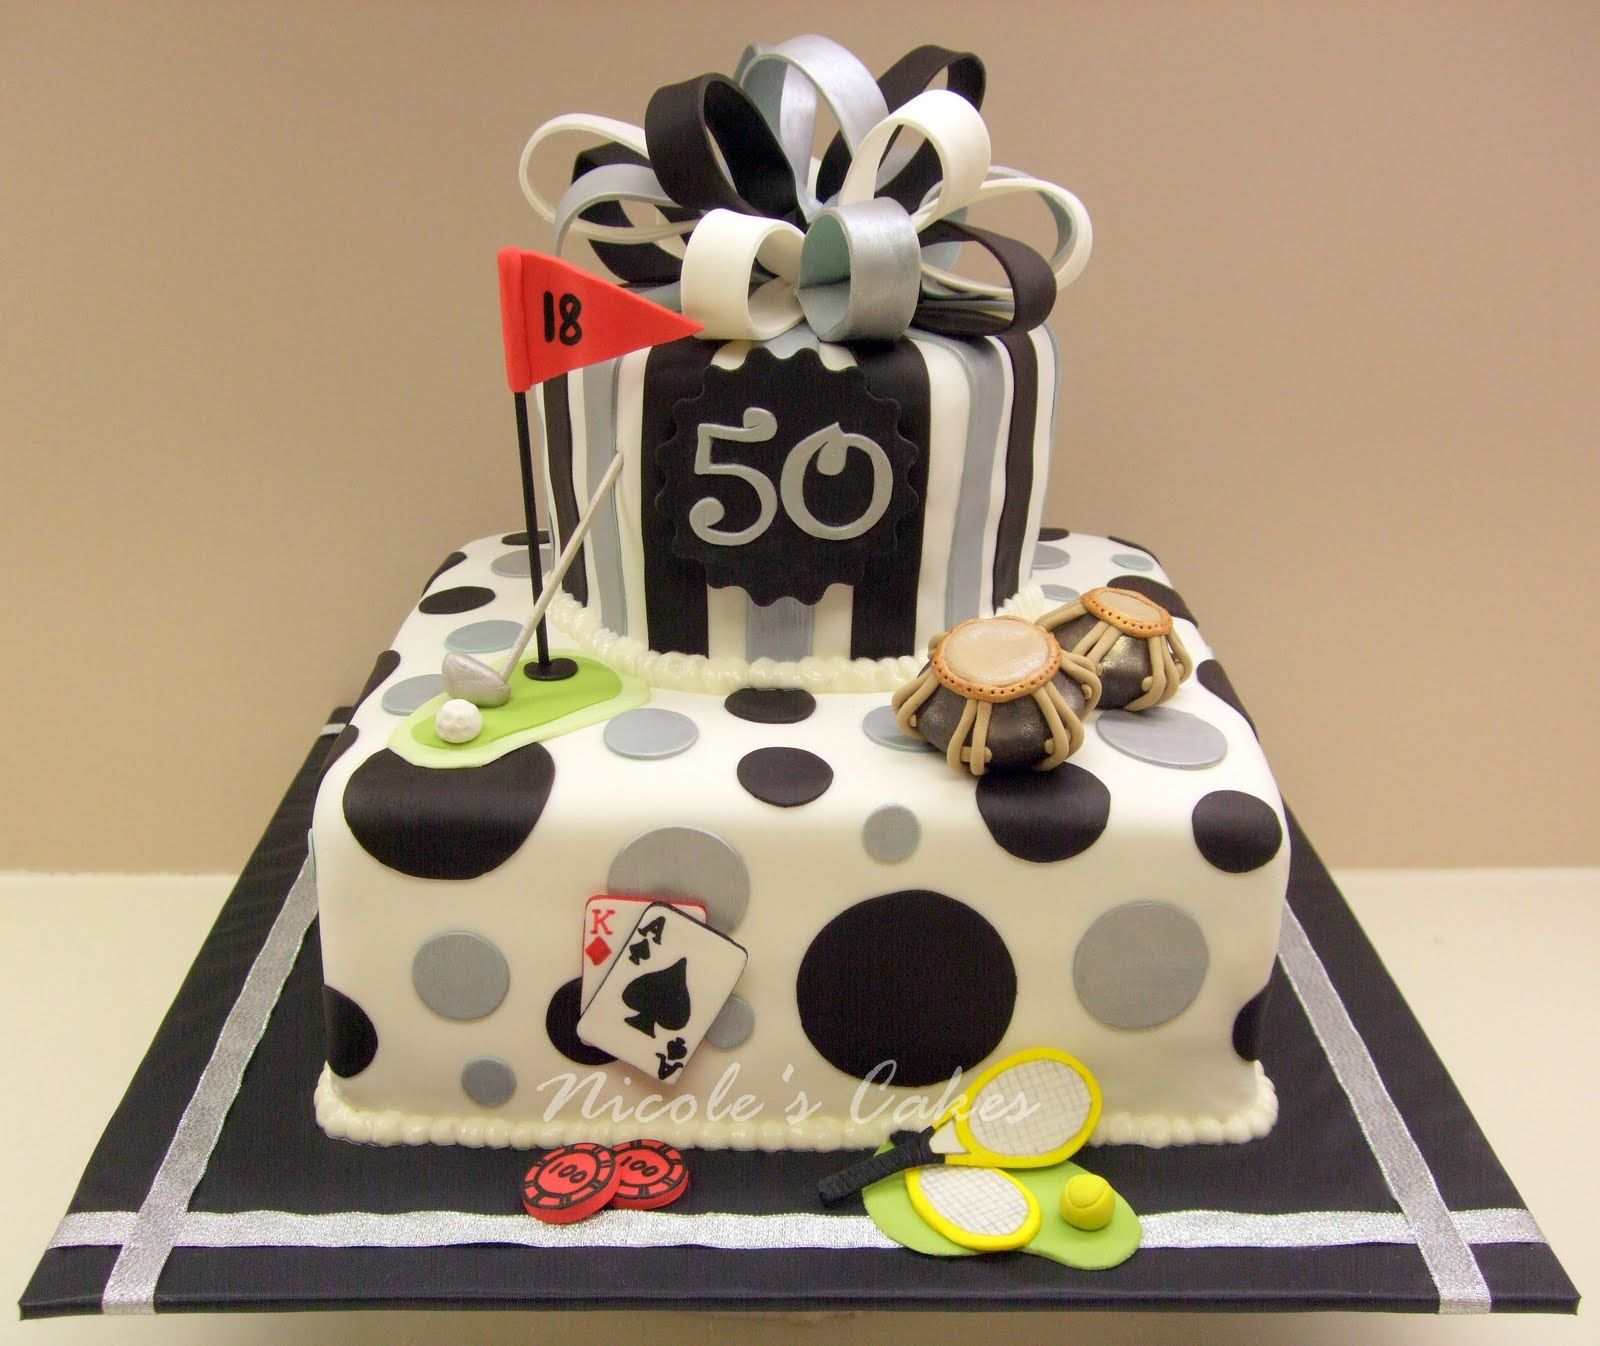 Confections Cakes  Creations Favorite Things  A Th - Favorite birthday cake